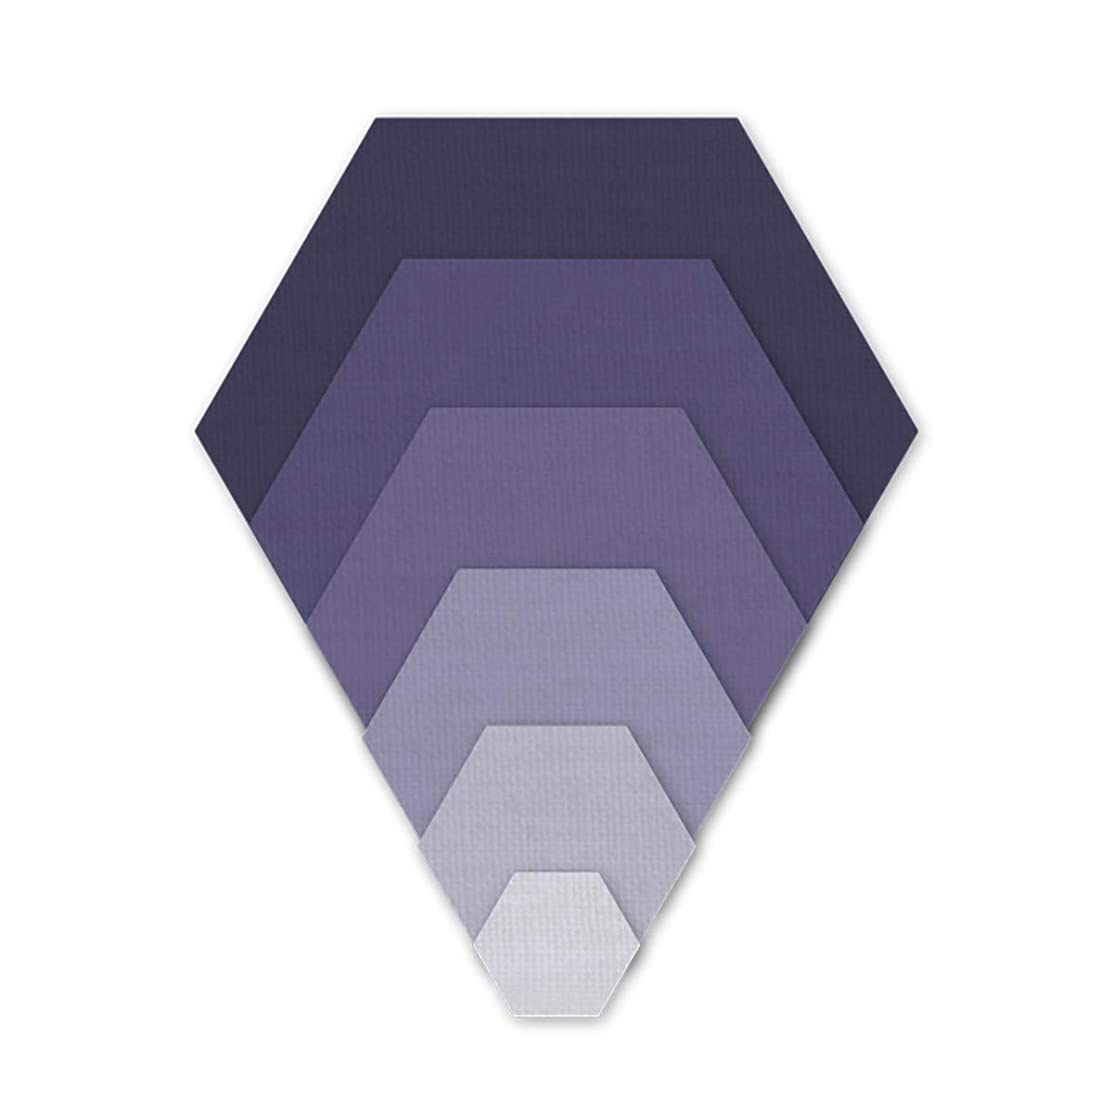 Crafter's Edge Q1077 Hexagons (in Half in increments)